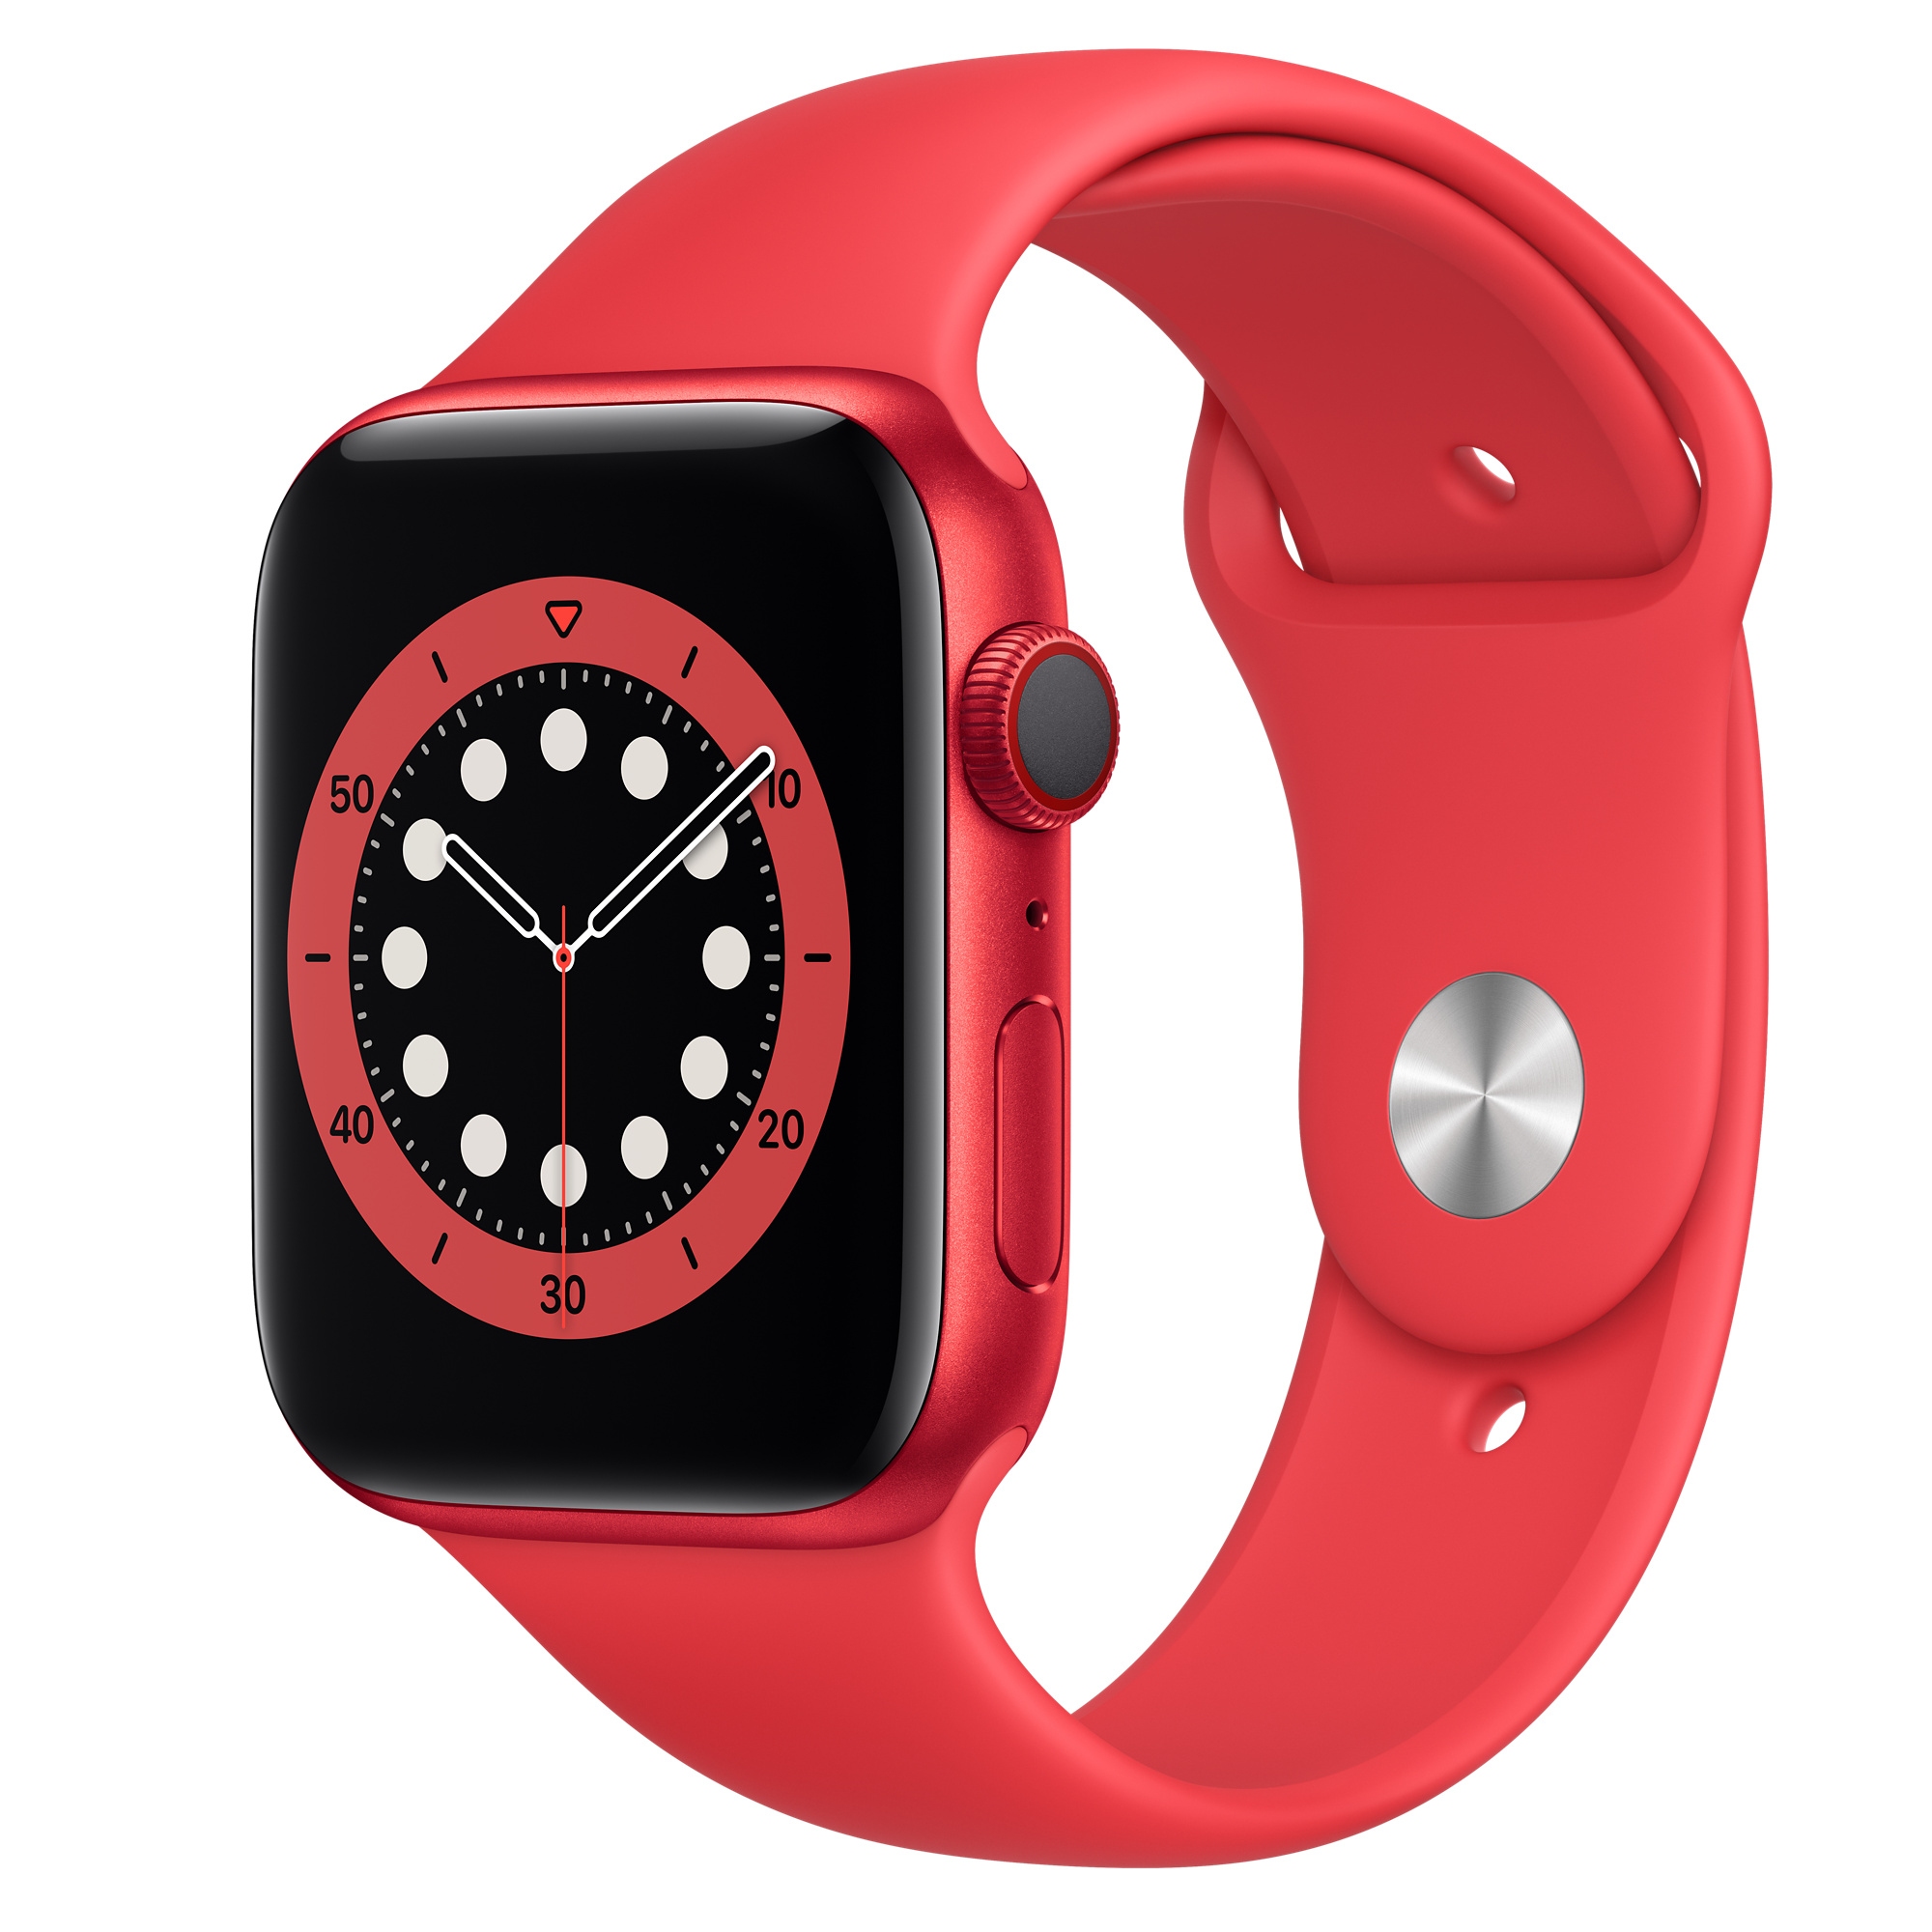 Apple Watch Series 6 (GPS) 40mm RED – Aluminum Case with RED Sport Band $299